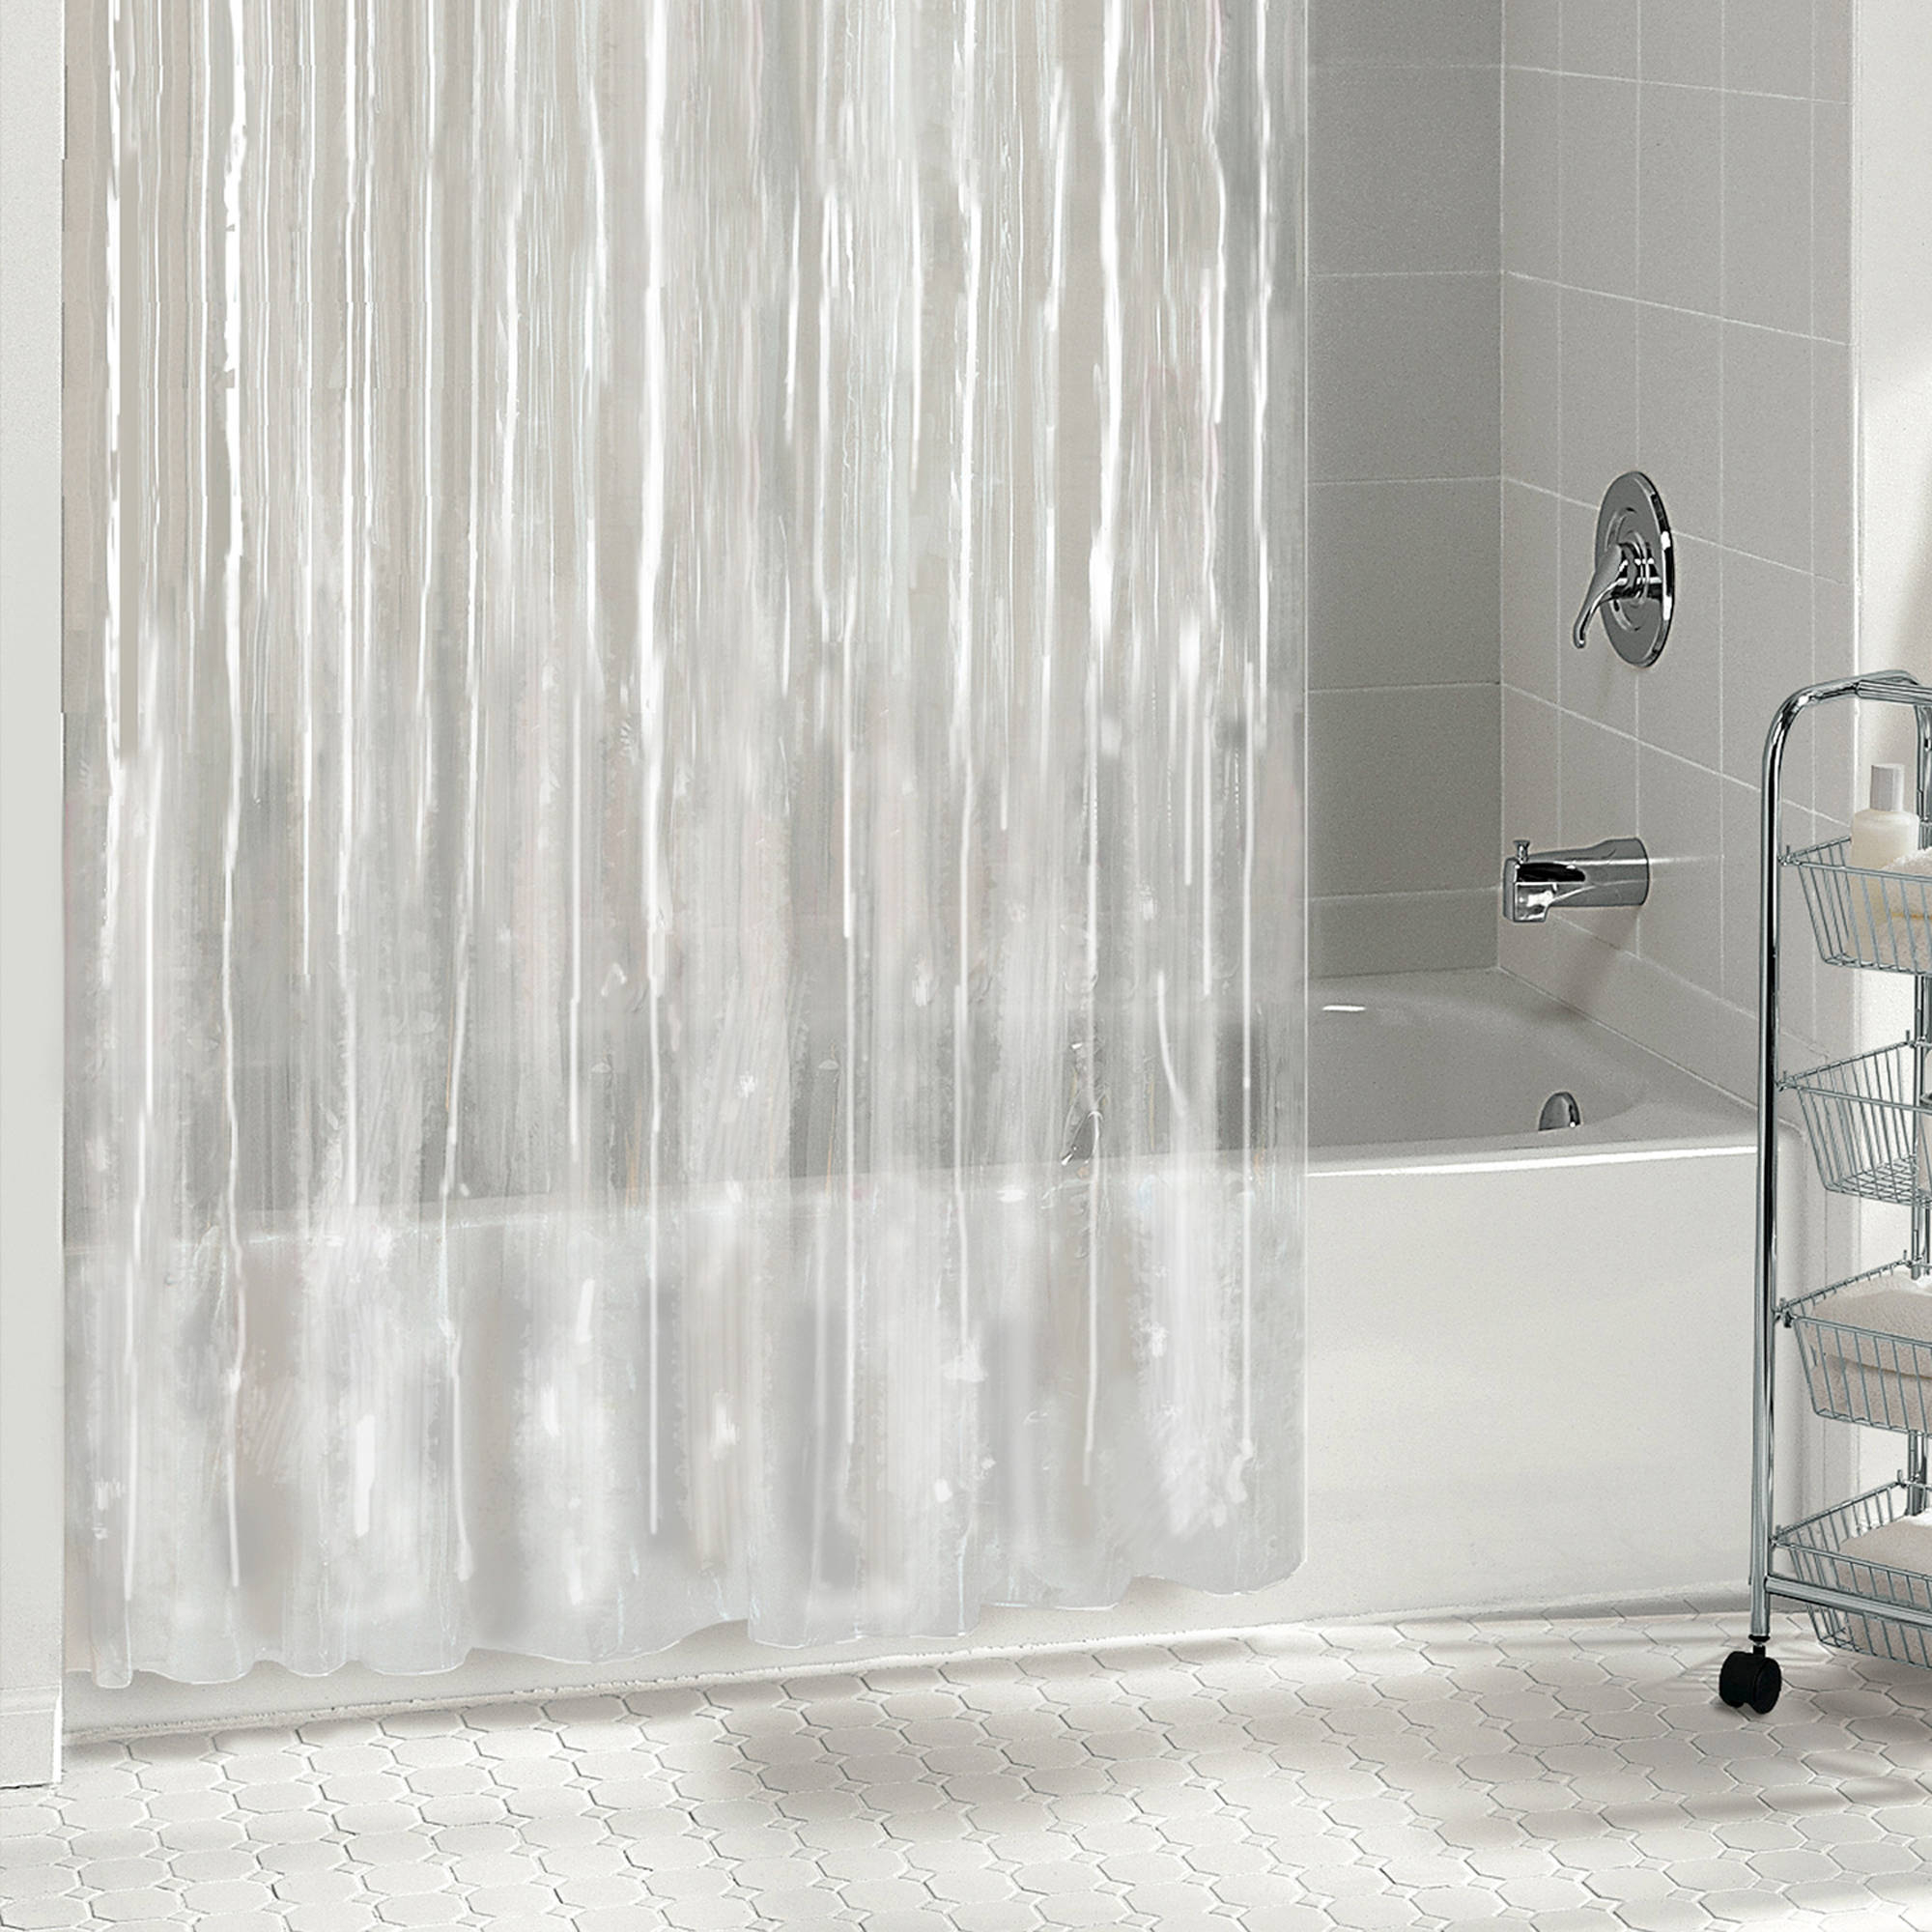 curtains awesome cot fotoventasd page inspirational on of category cotton coolest design home archives shower